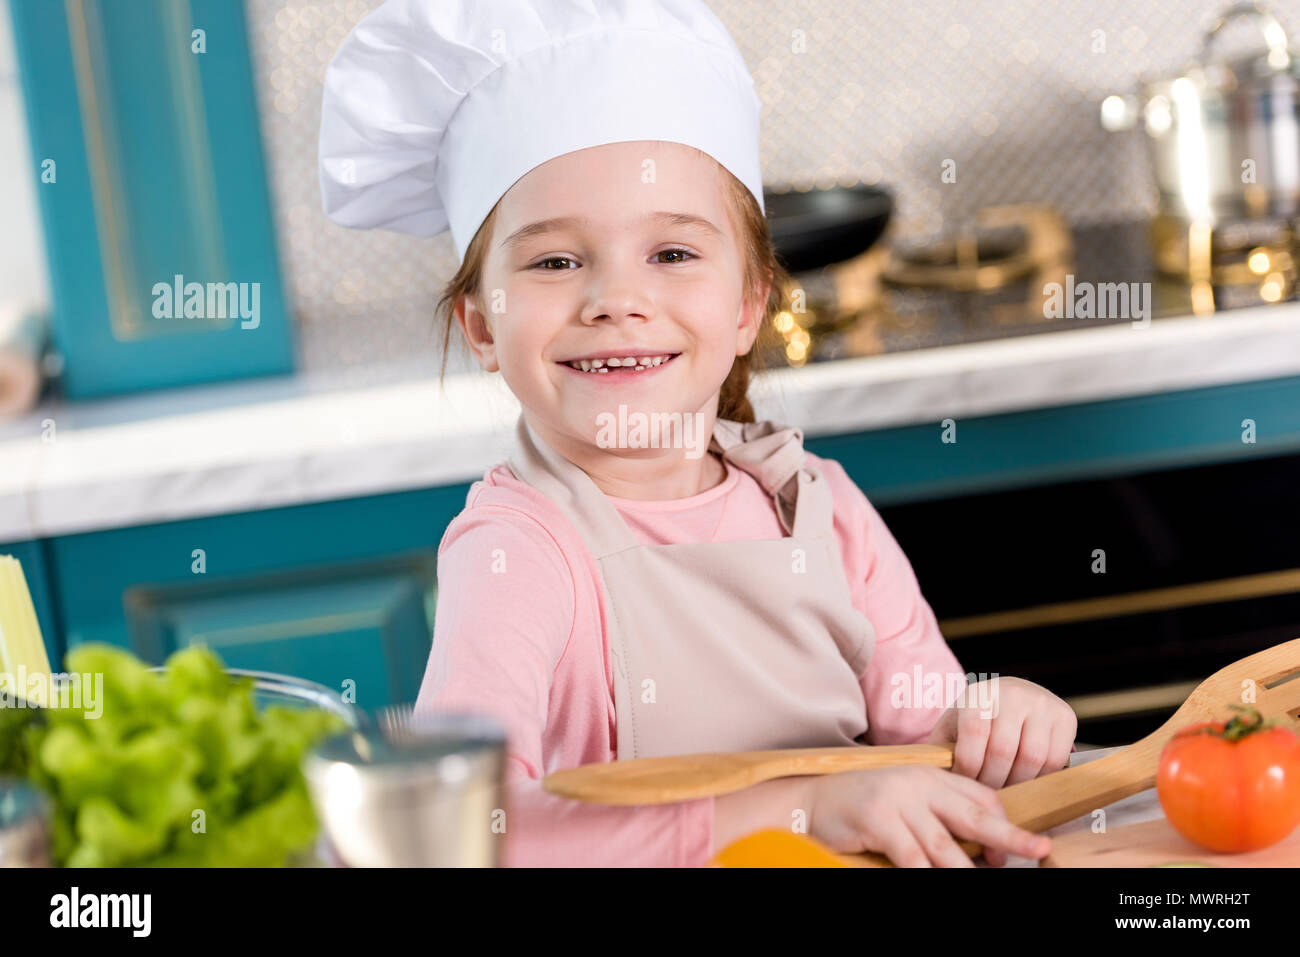 adorable child in chef hat and apron smiling at camera while cooking in kitchen - Stock Image